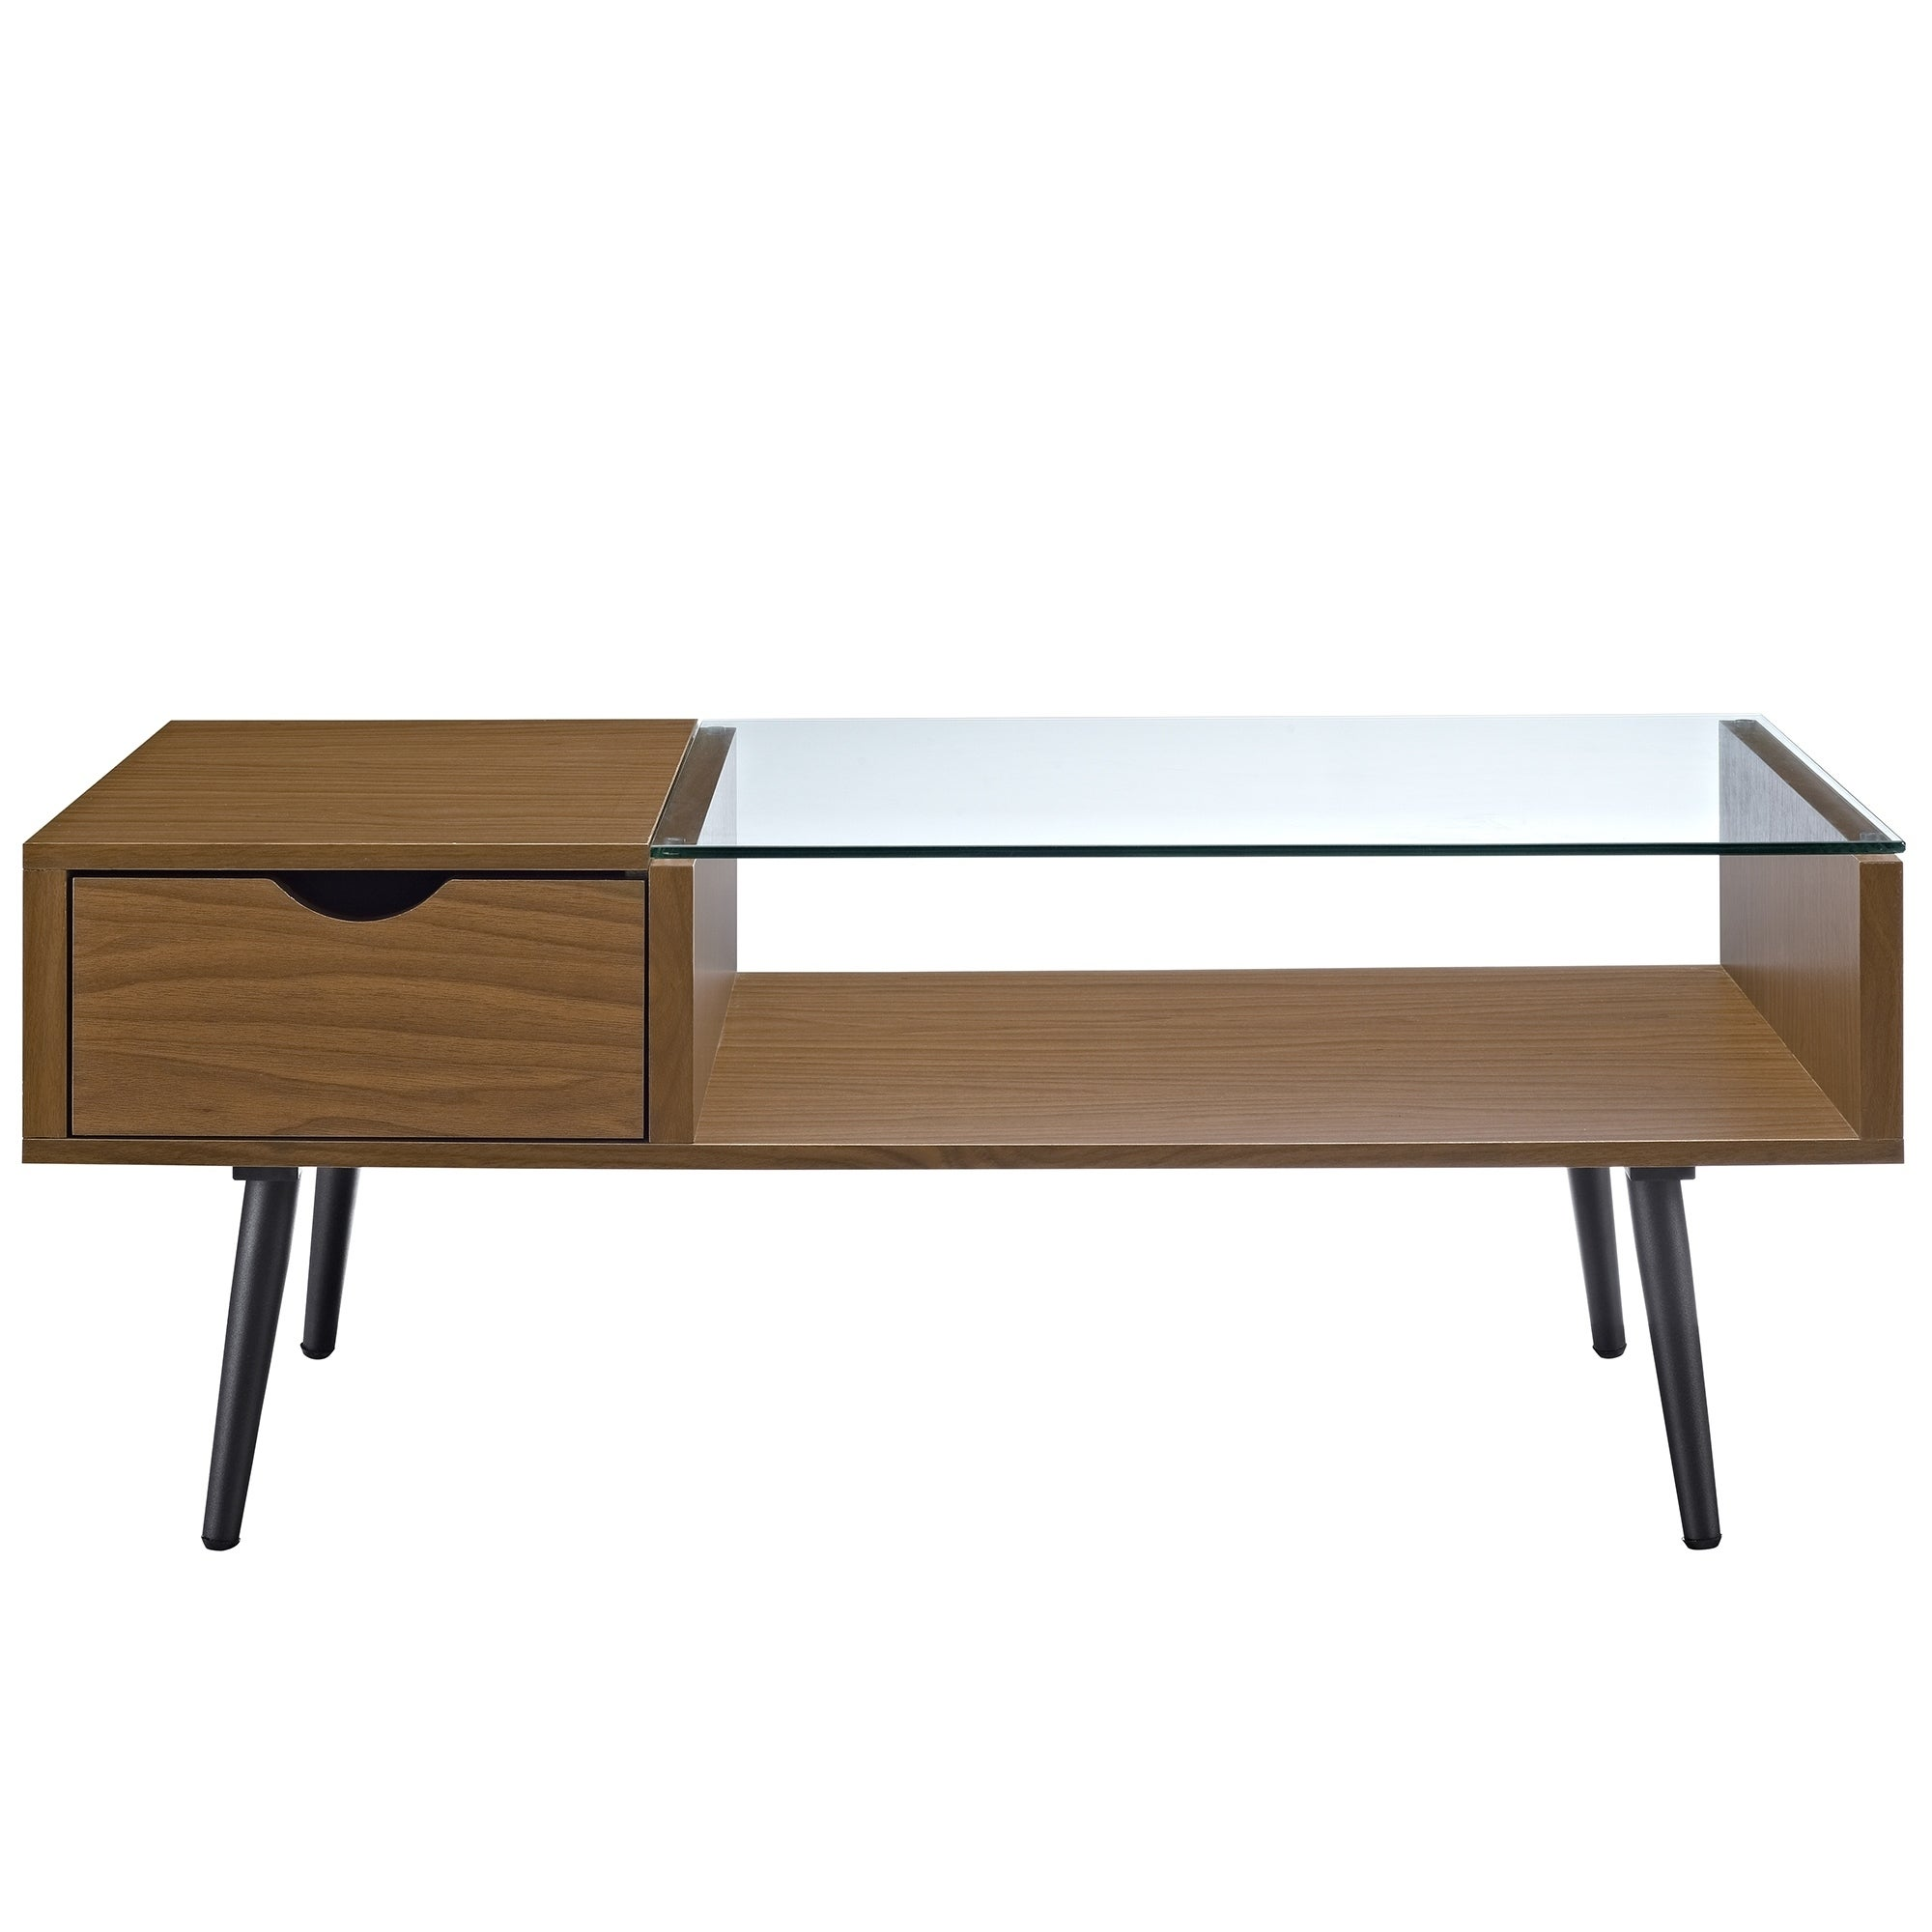 Shop MidCentury Modern Inch Wood And Glass Coffee Table On - Mid century wood and glass coffee table